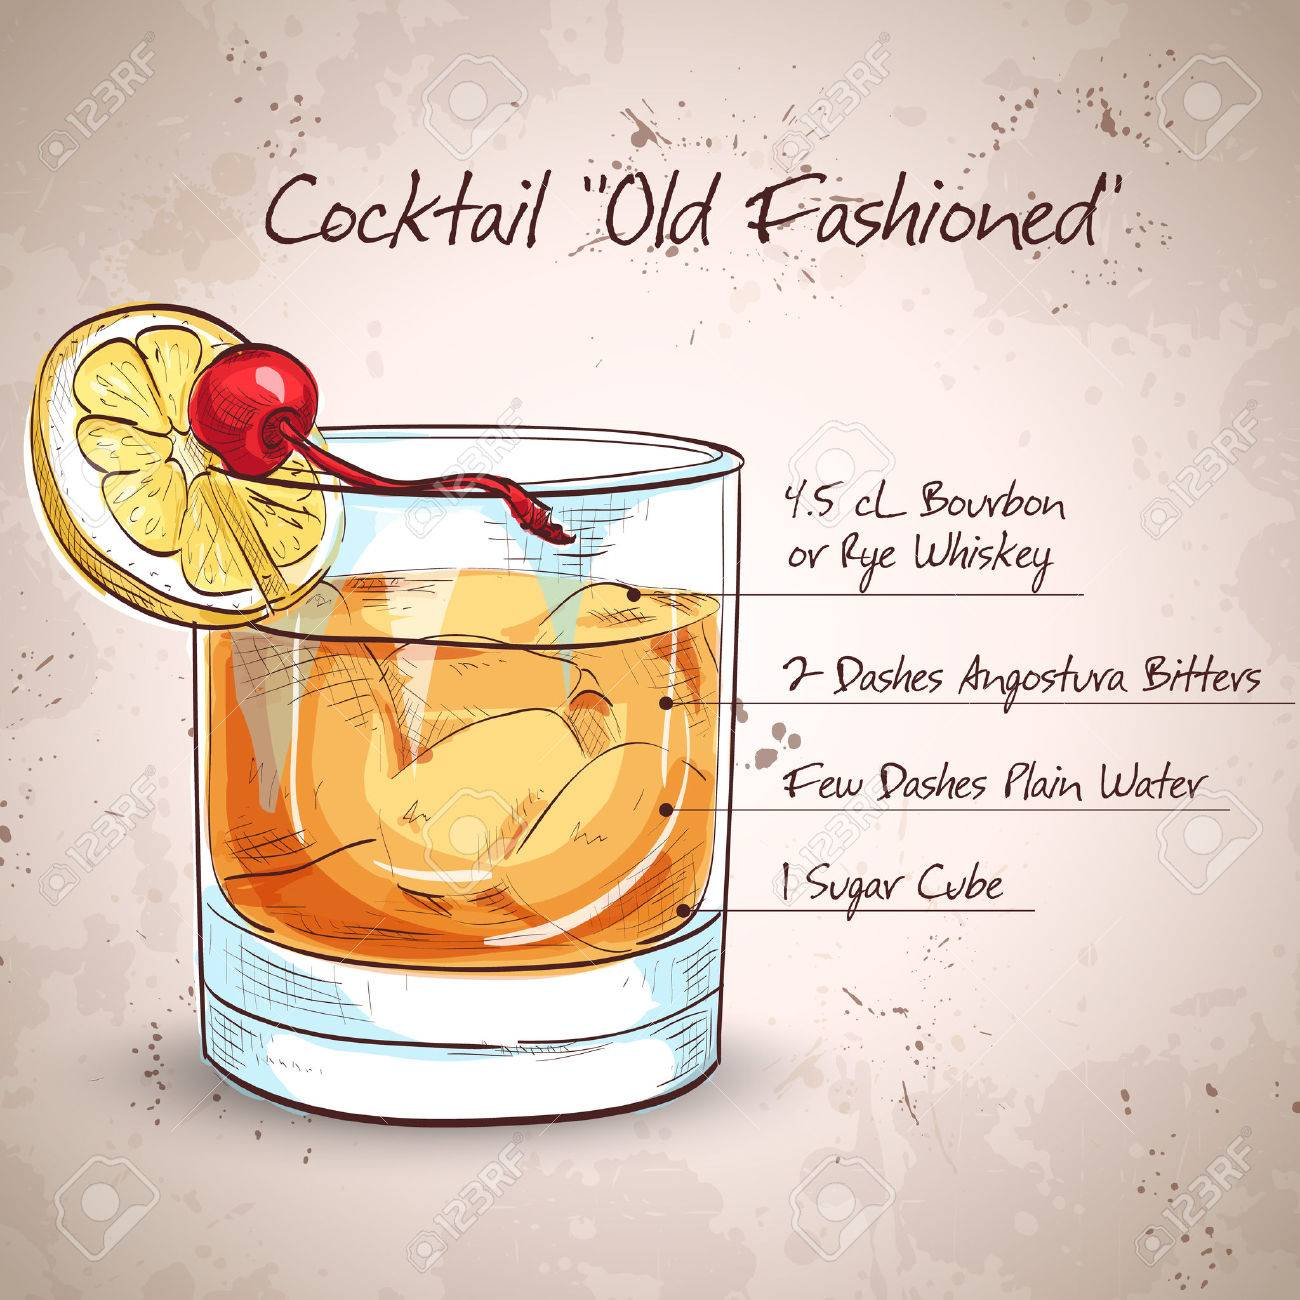 old fashioned or old fashioned